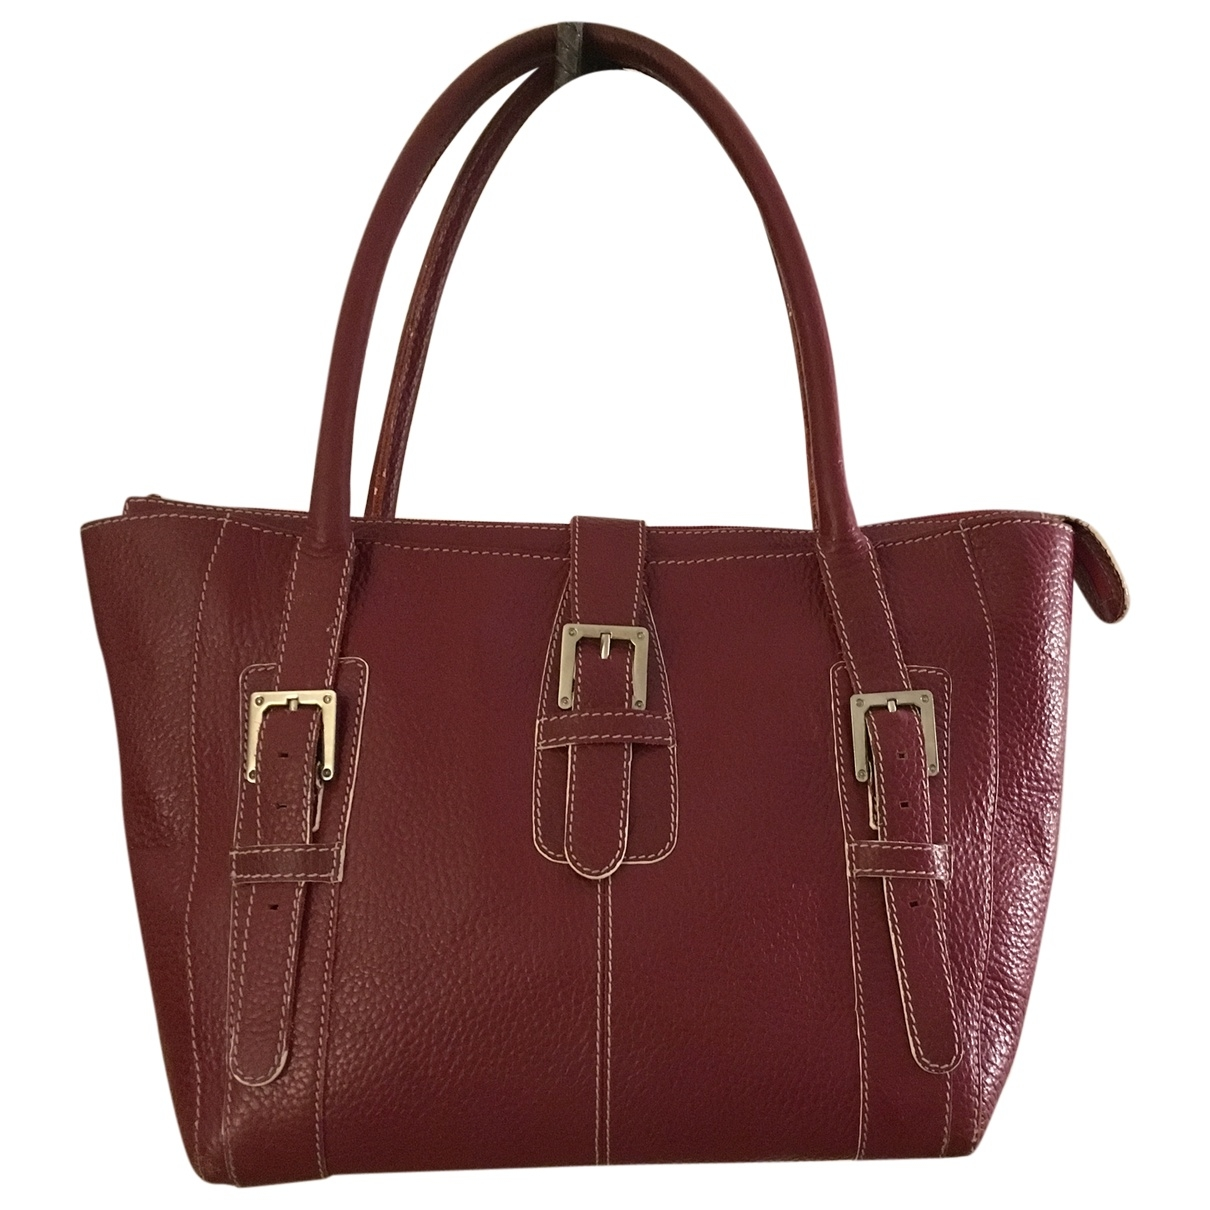 Loewe \N Red Leather handbag for Women \N